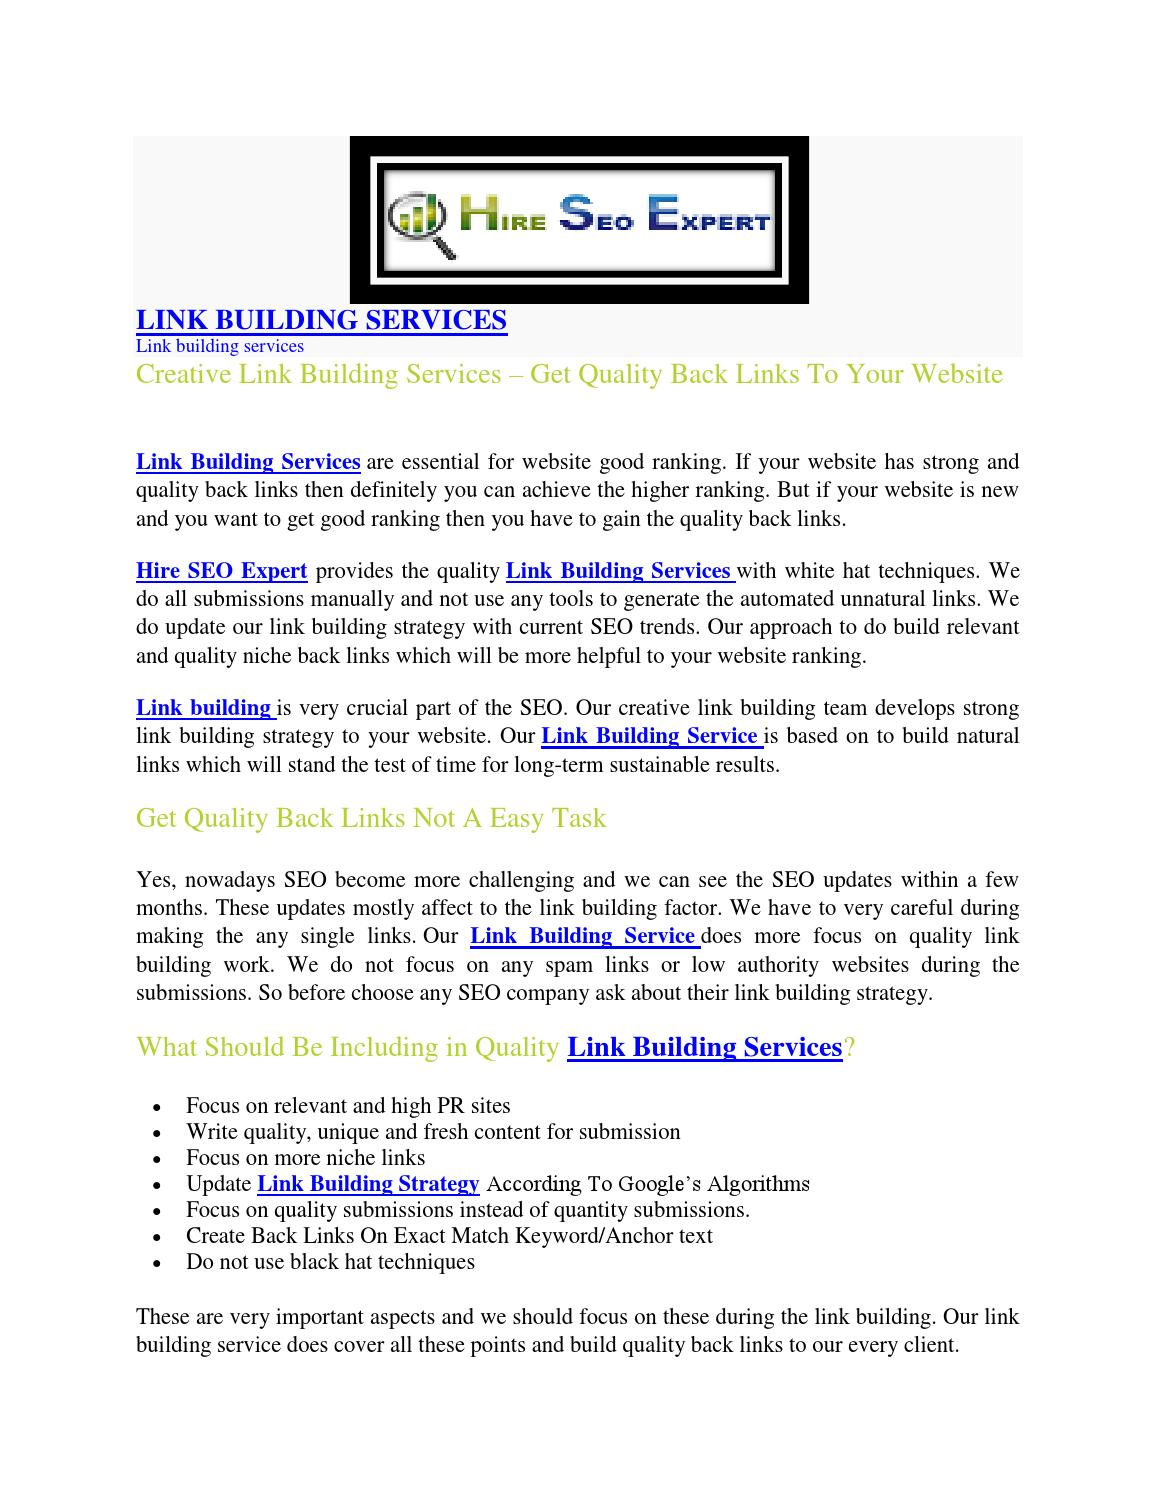 Creative link building services – get quality back links to